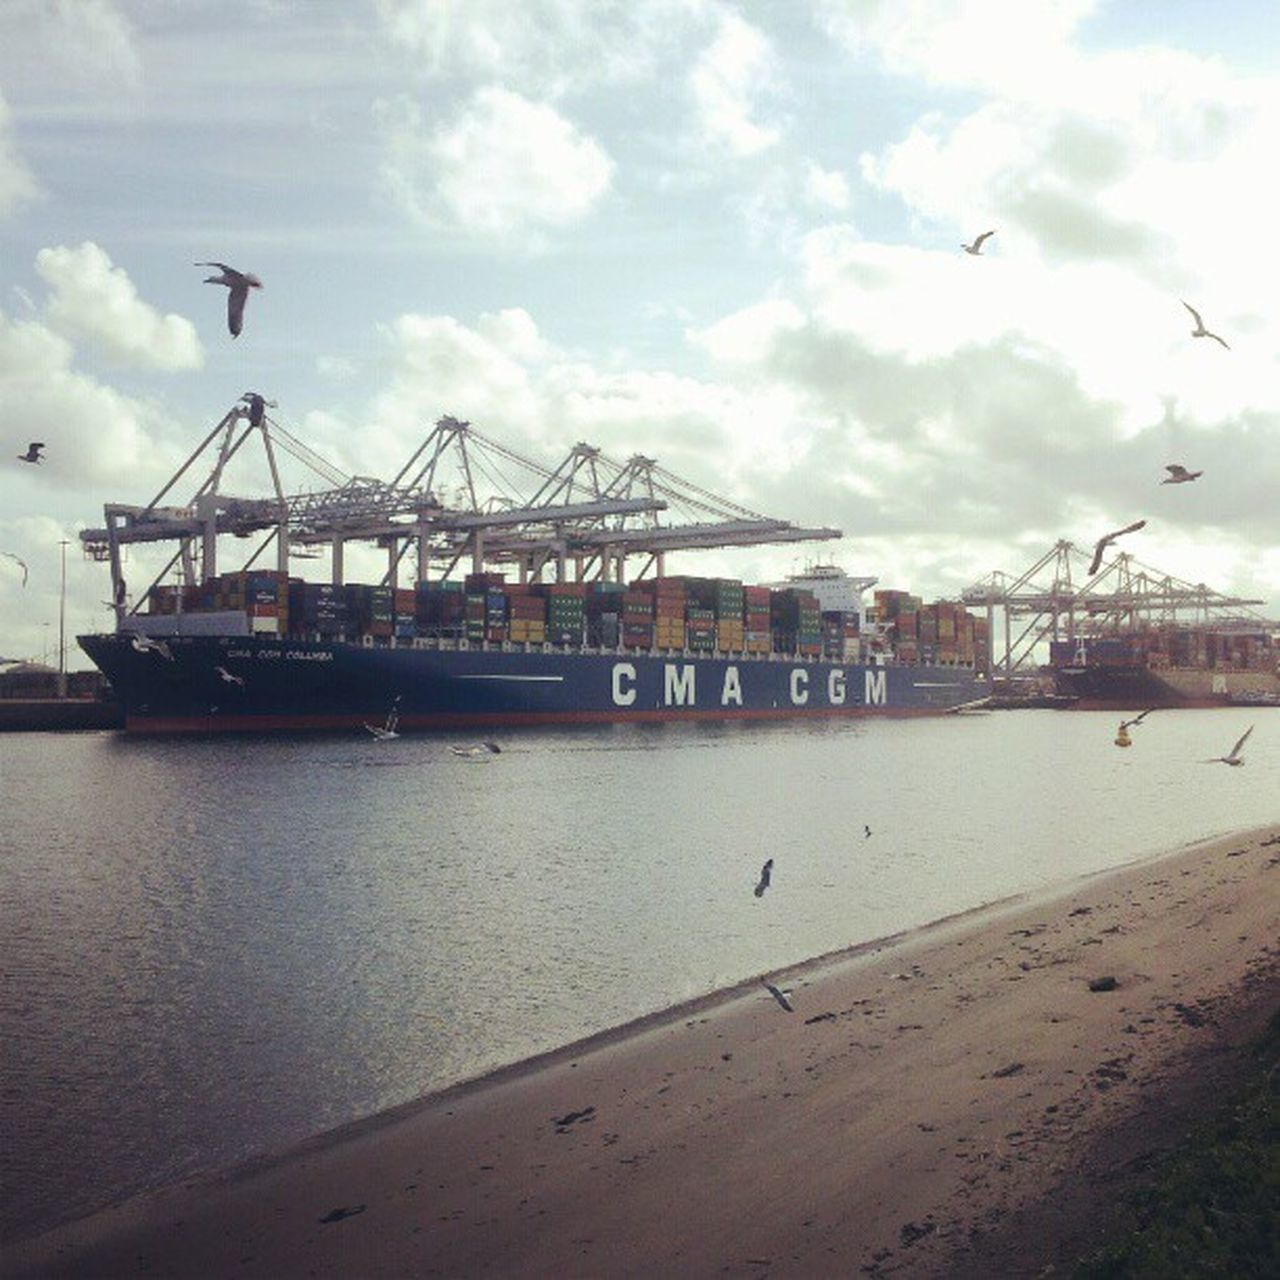 sky, sea, water, cloud - sky, freight transportation, built structure, shipping, transportation, industry, architecture, outdoors, harbor, crane - construction machinery, day, building exterior, commercial dock, nautical vessel, cargo container, no people, beach, nature, beauty in nature, city